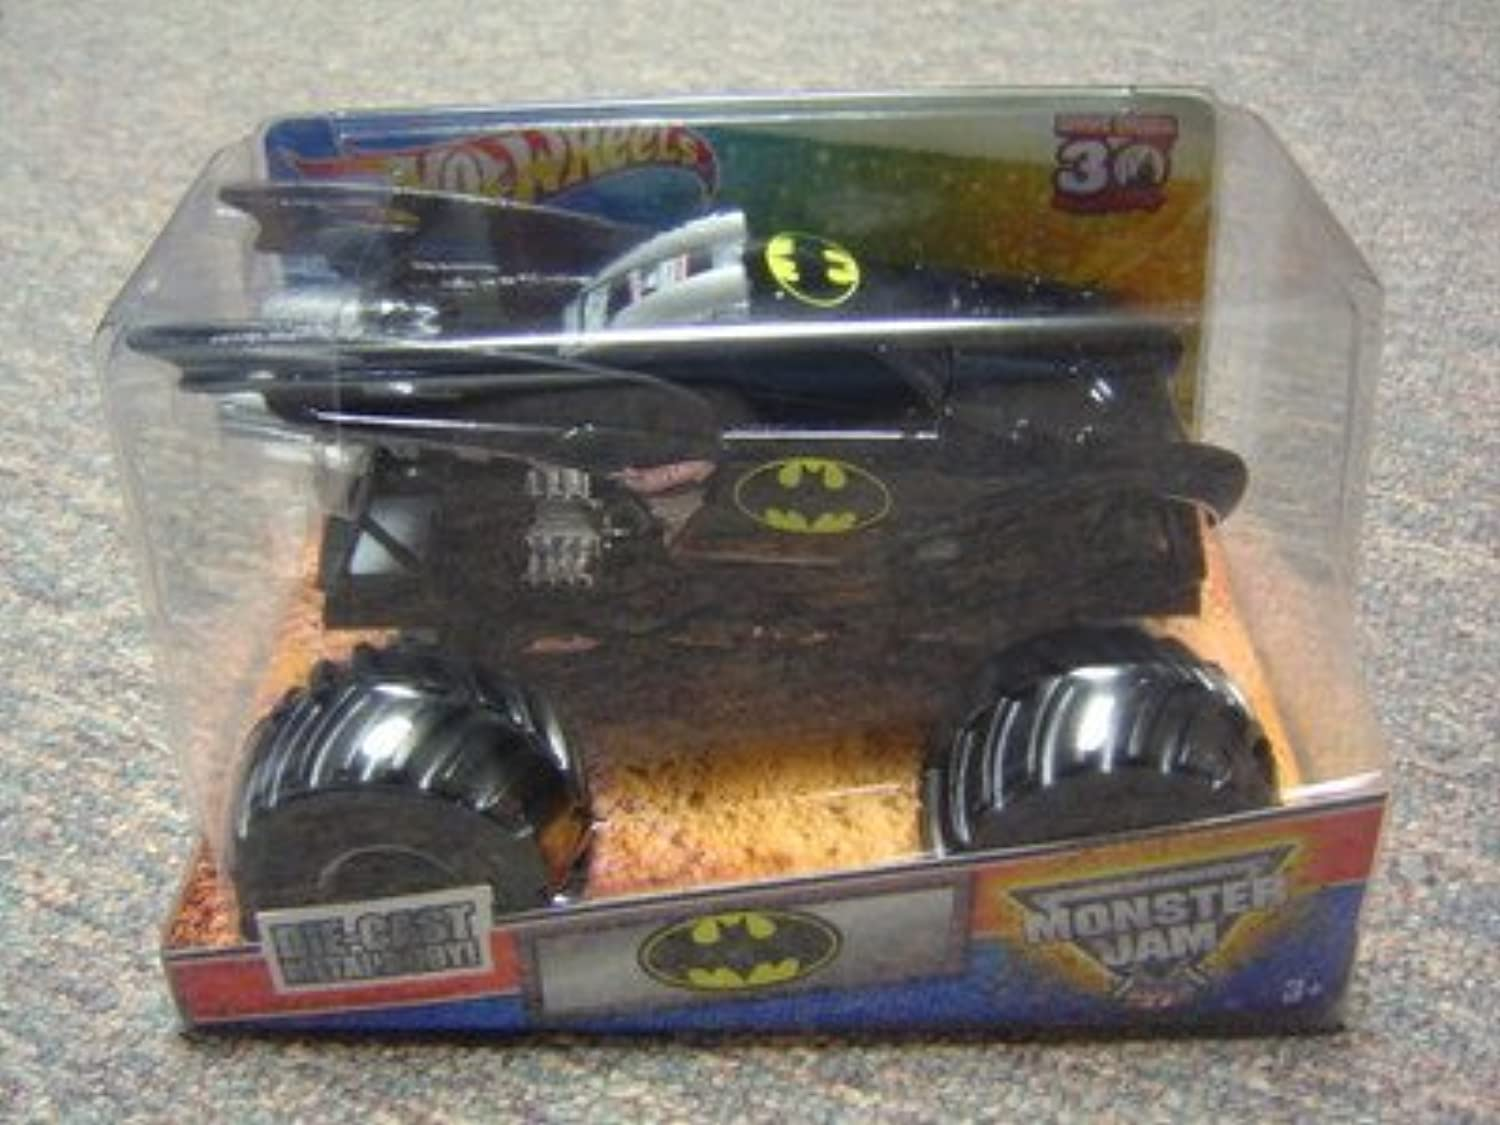 Monster Jam 1 24 Die Cast Grave Digger 30th Anniversary 2012 Edition Batman Monster Truck by MATTEL